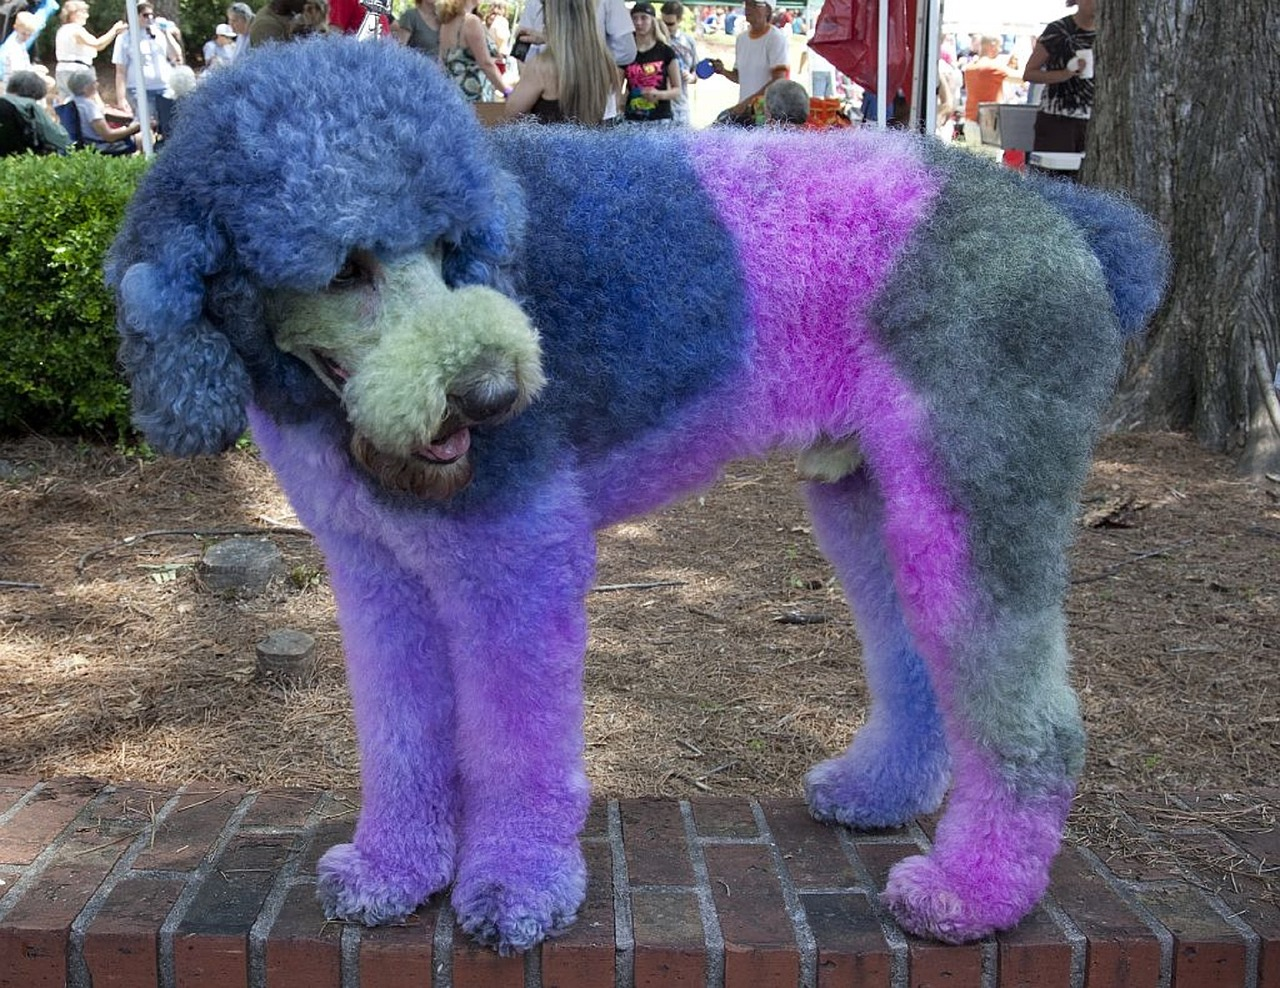 Hallween for dogs - no dye